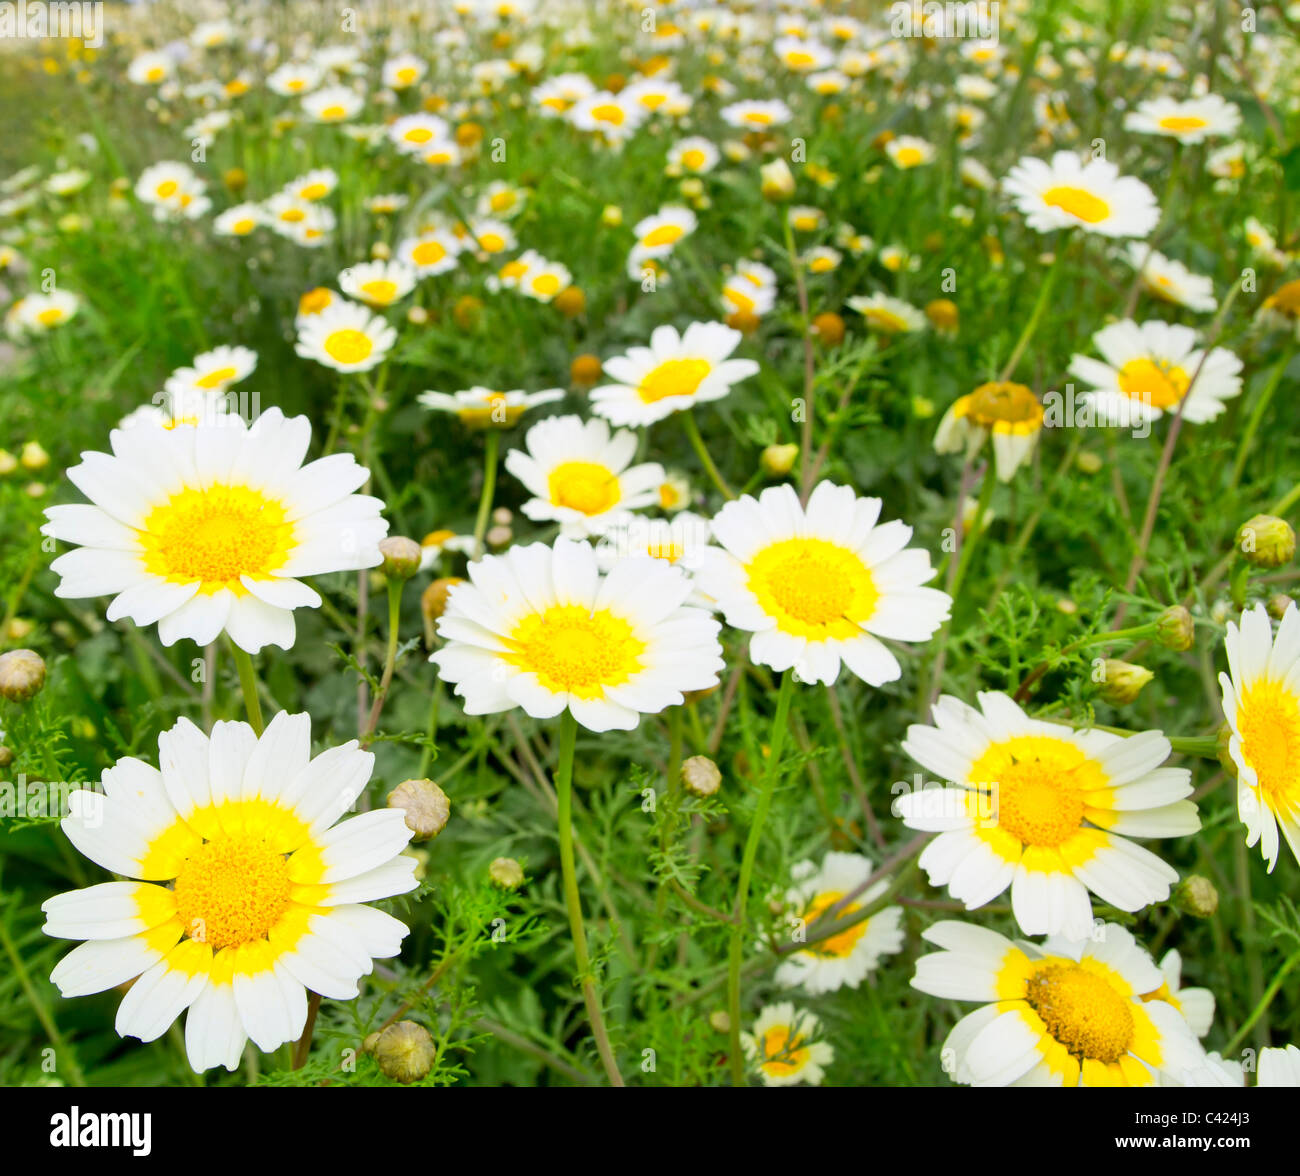 Daisy Spring Flowers Field Yellow And White Colorful Meadow Stock